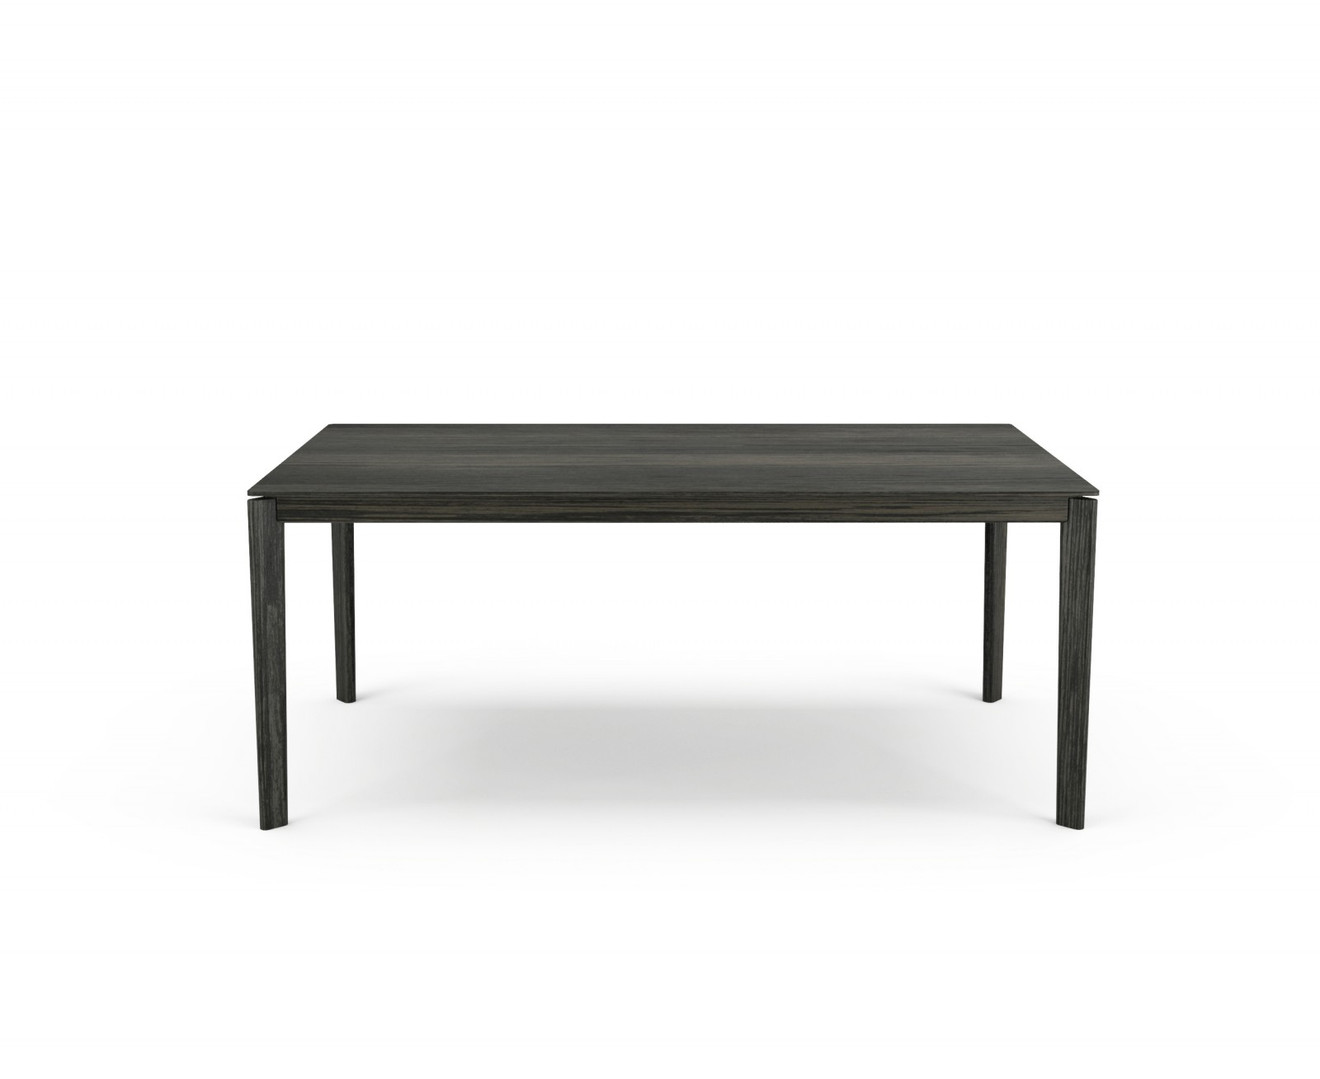 WOLFGANG 72'' TABLE